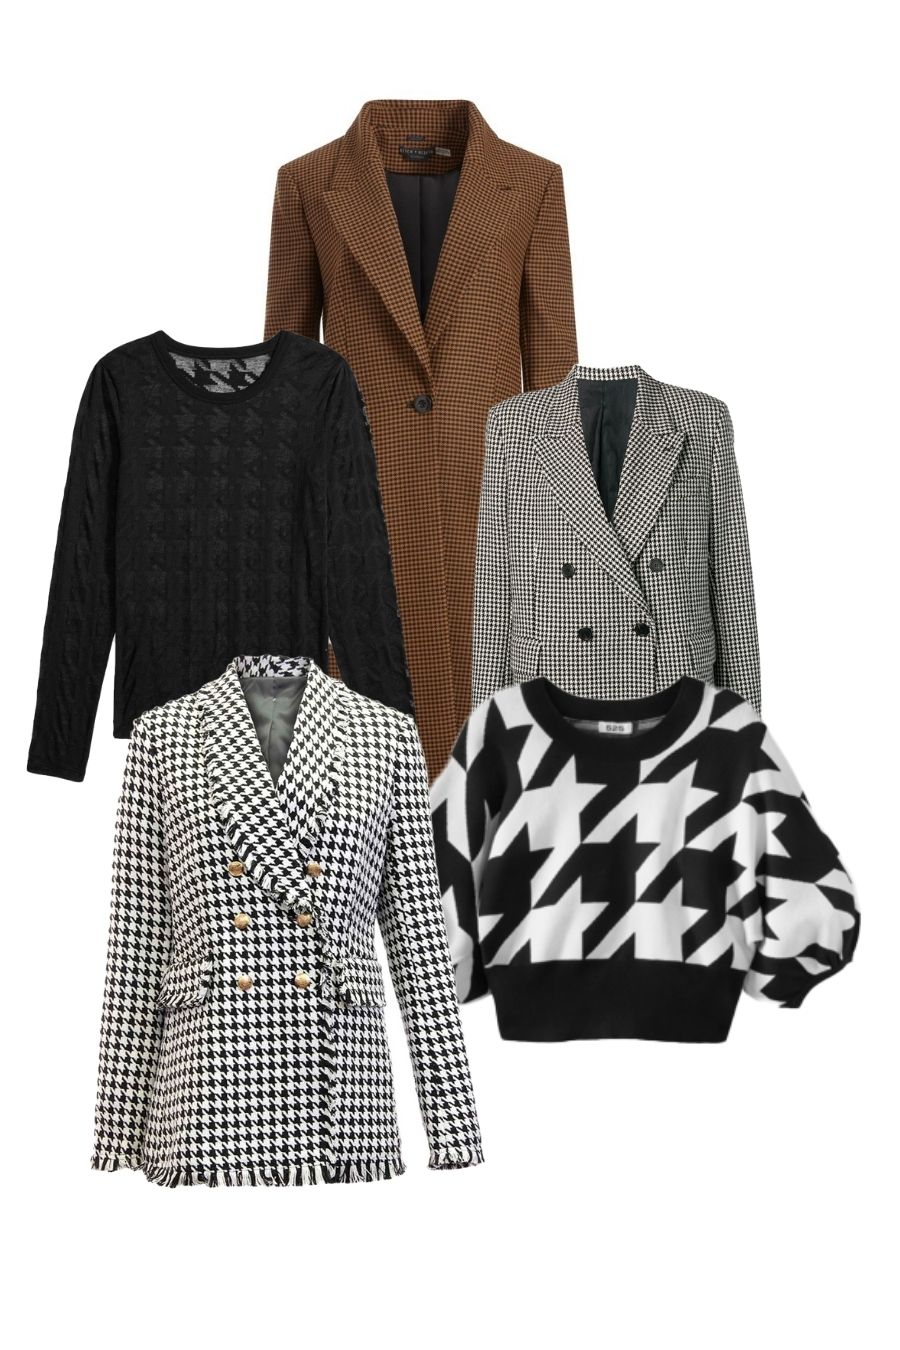 houndstooth and gingham print fashion pieces